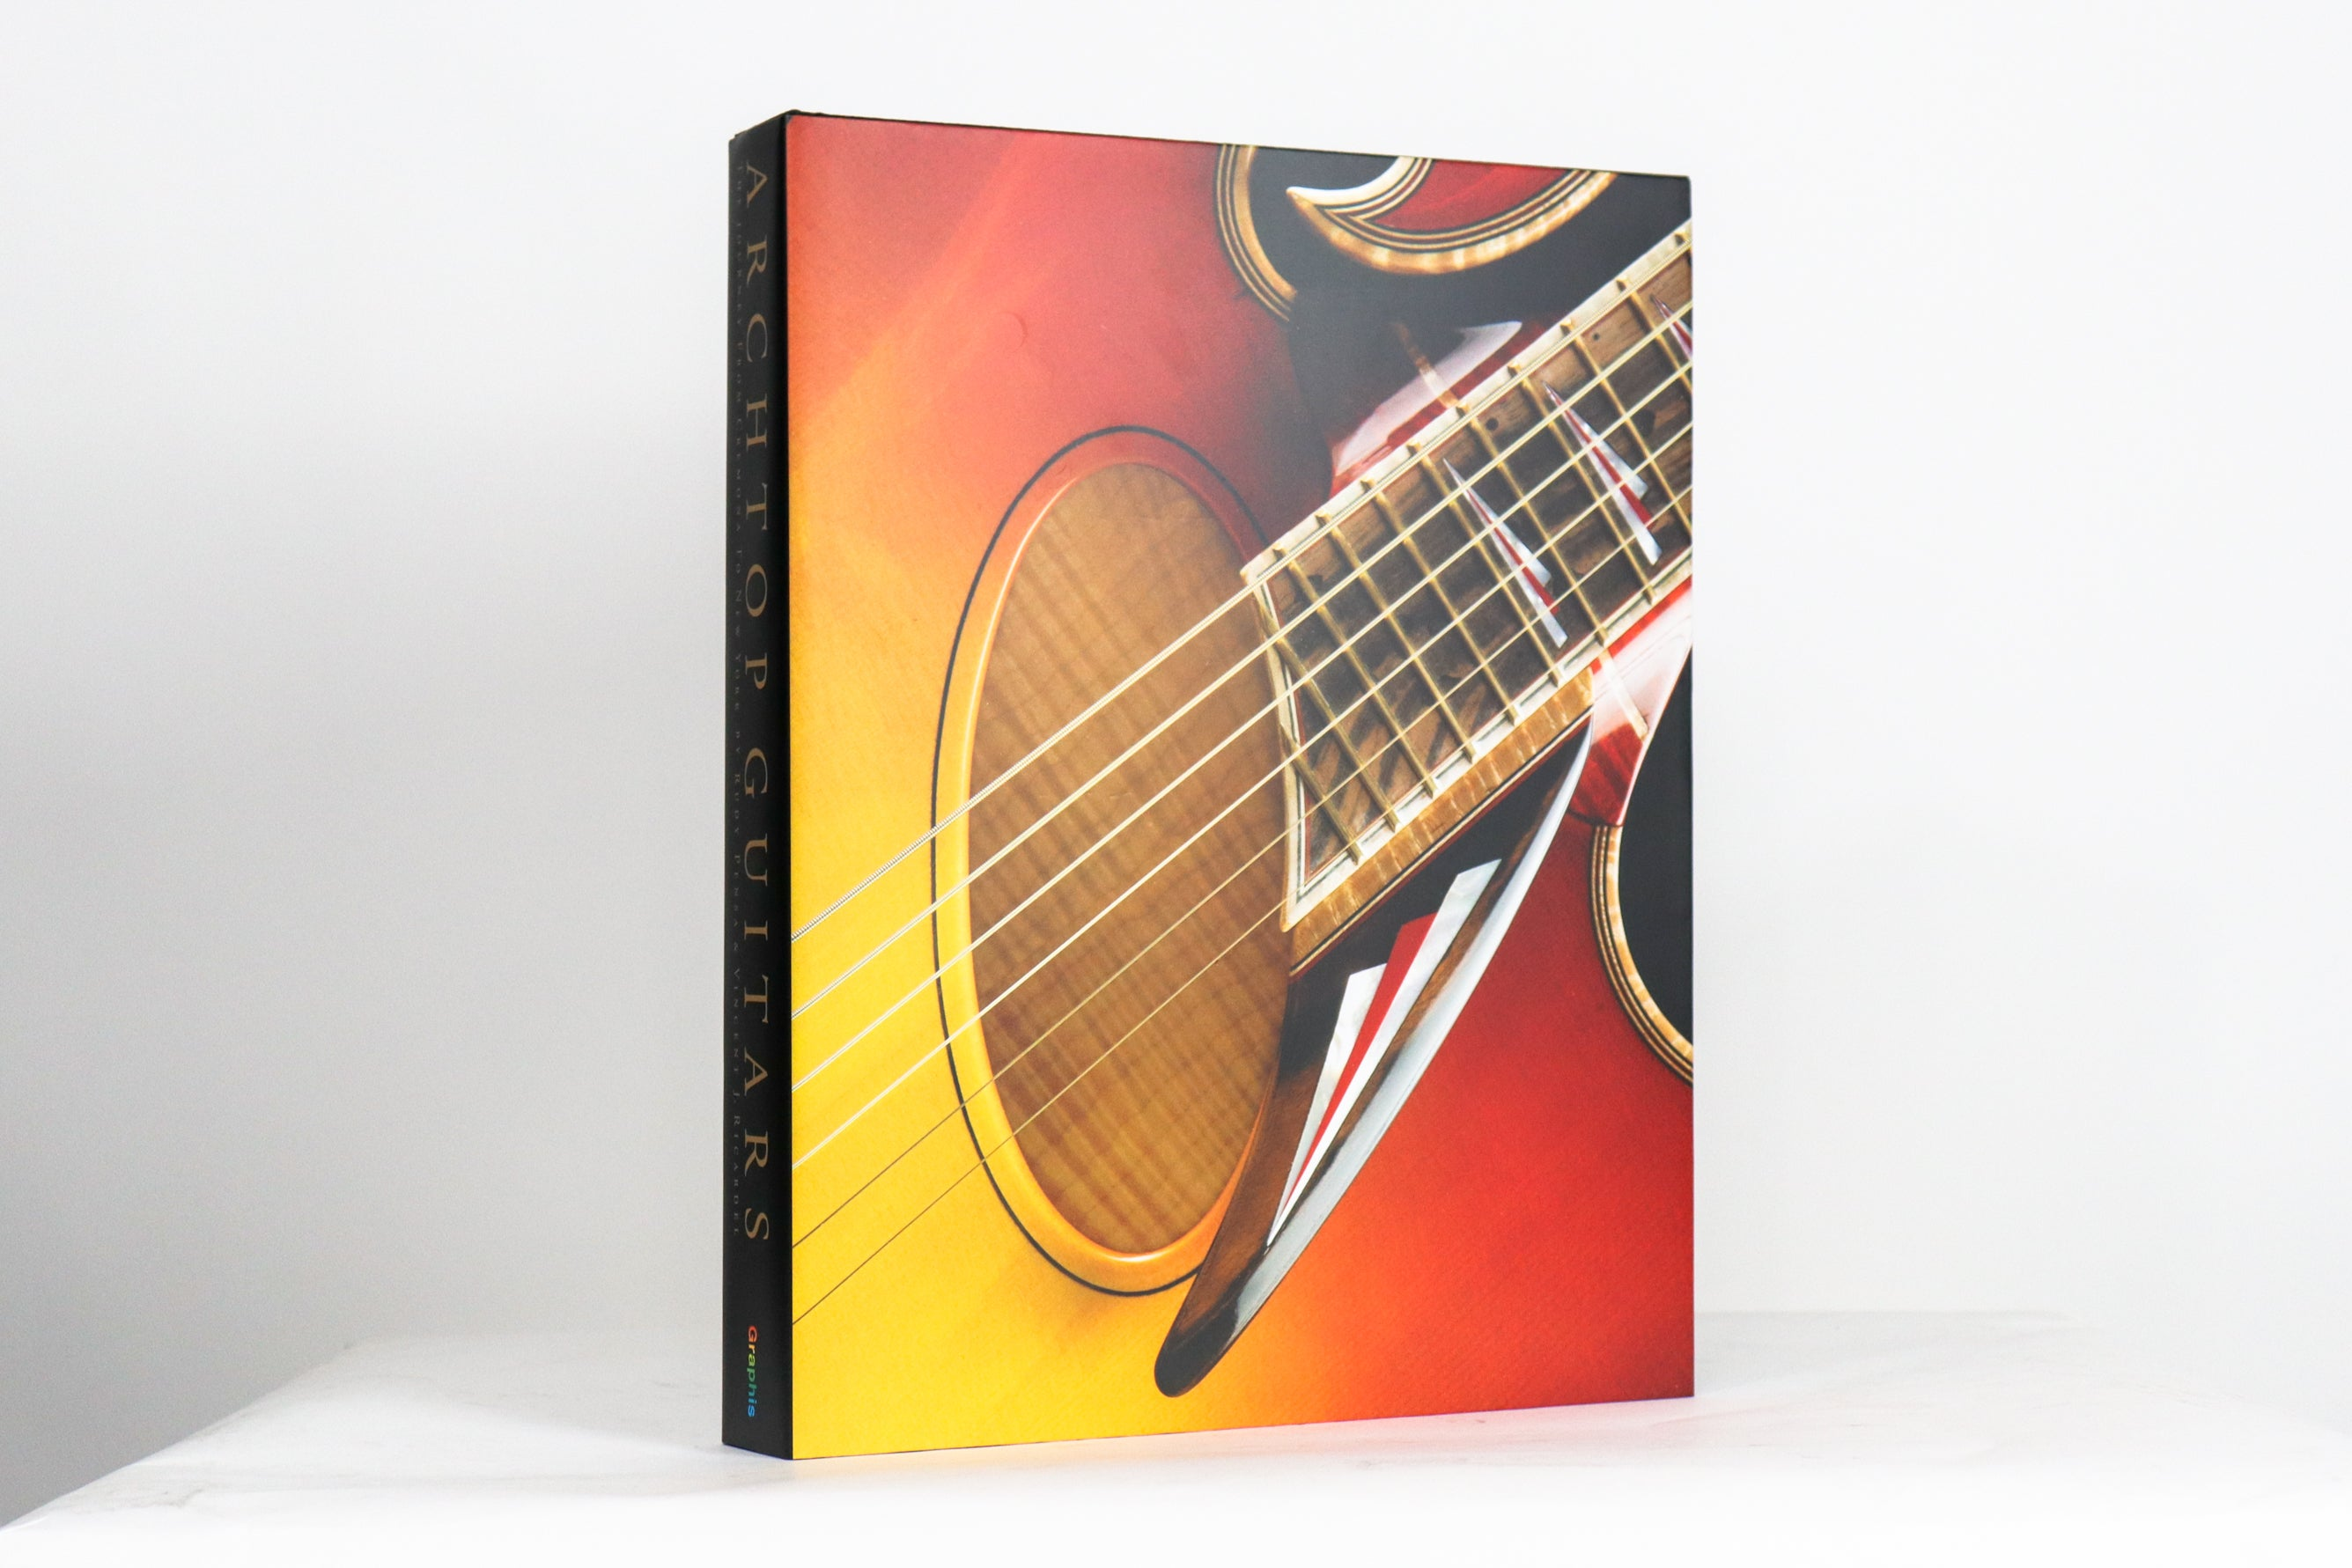 Archtop Guitars: The Journey from Cremona to New York by Rudy Pensa Deluxe Edition